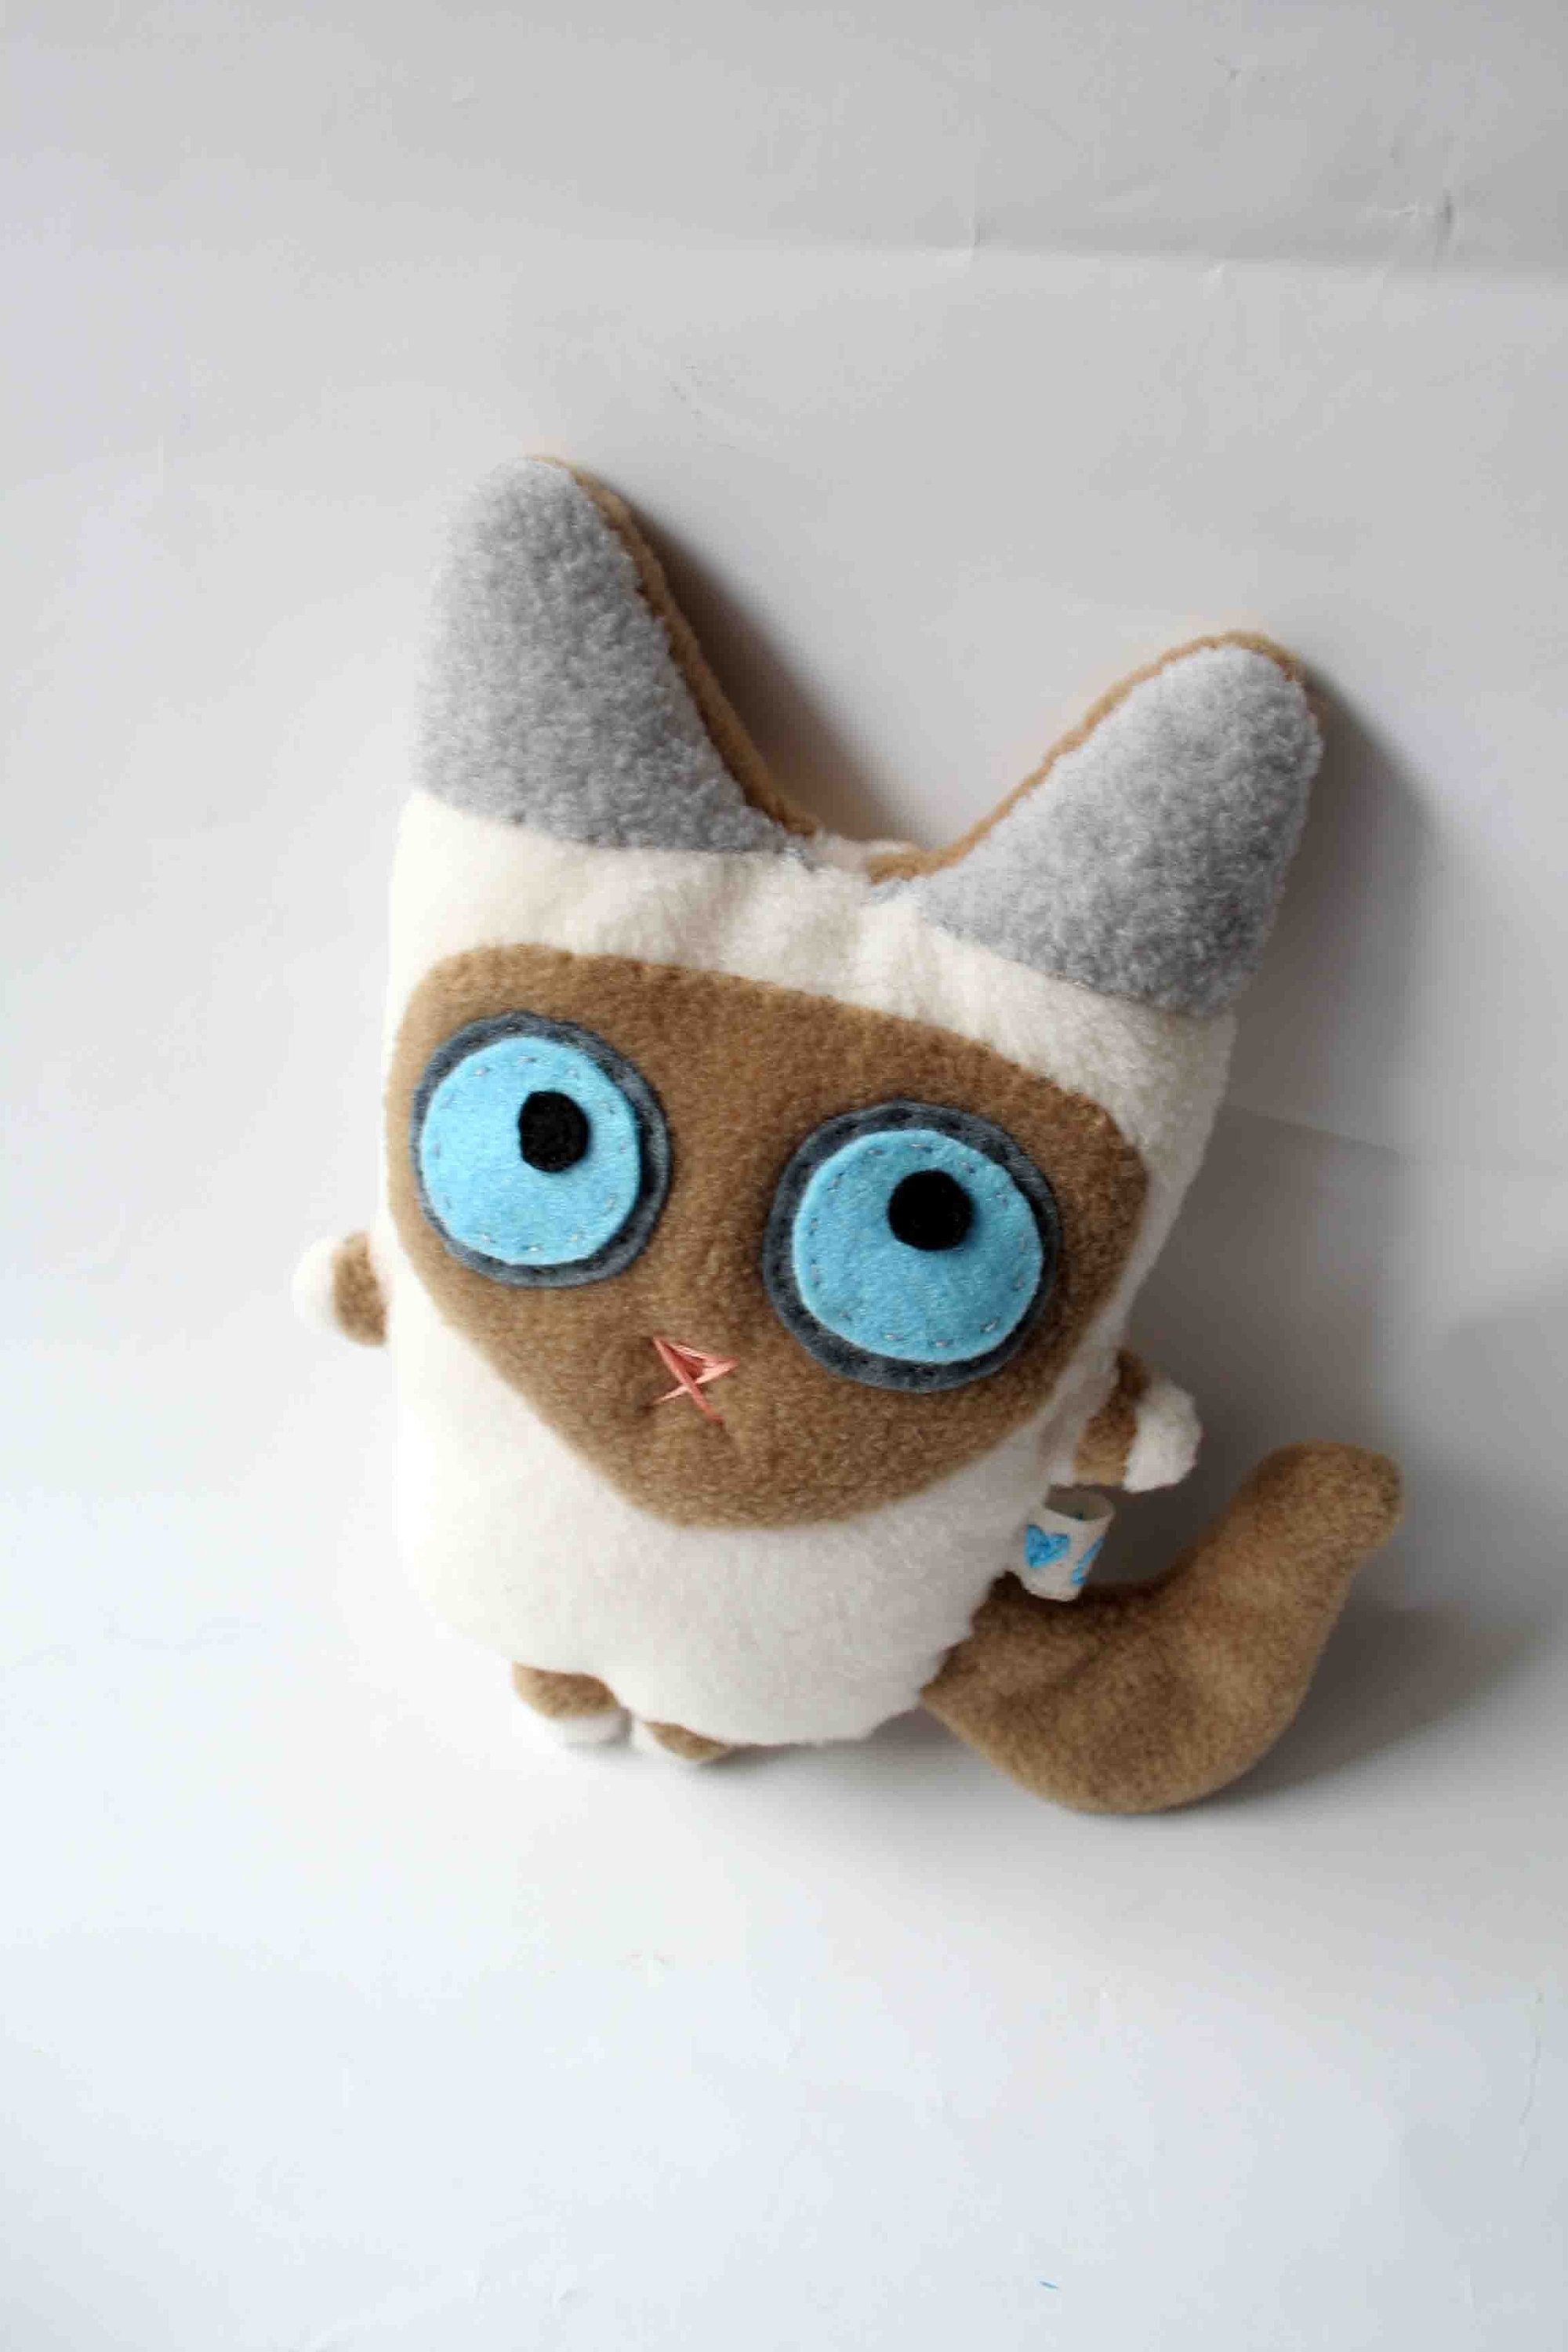 Squishy Nose Cat : Red point Birman or Mitted Ragdoll cat by hamster on Etsy